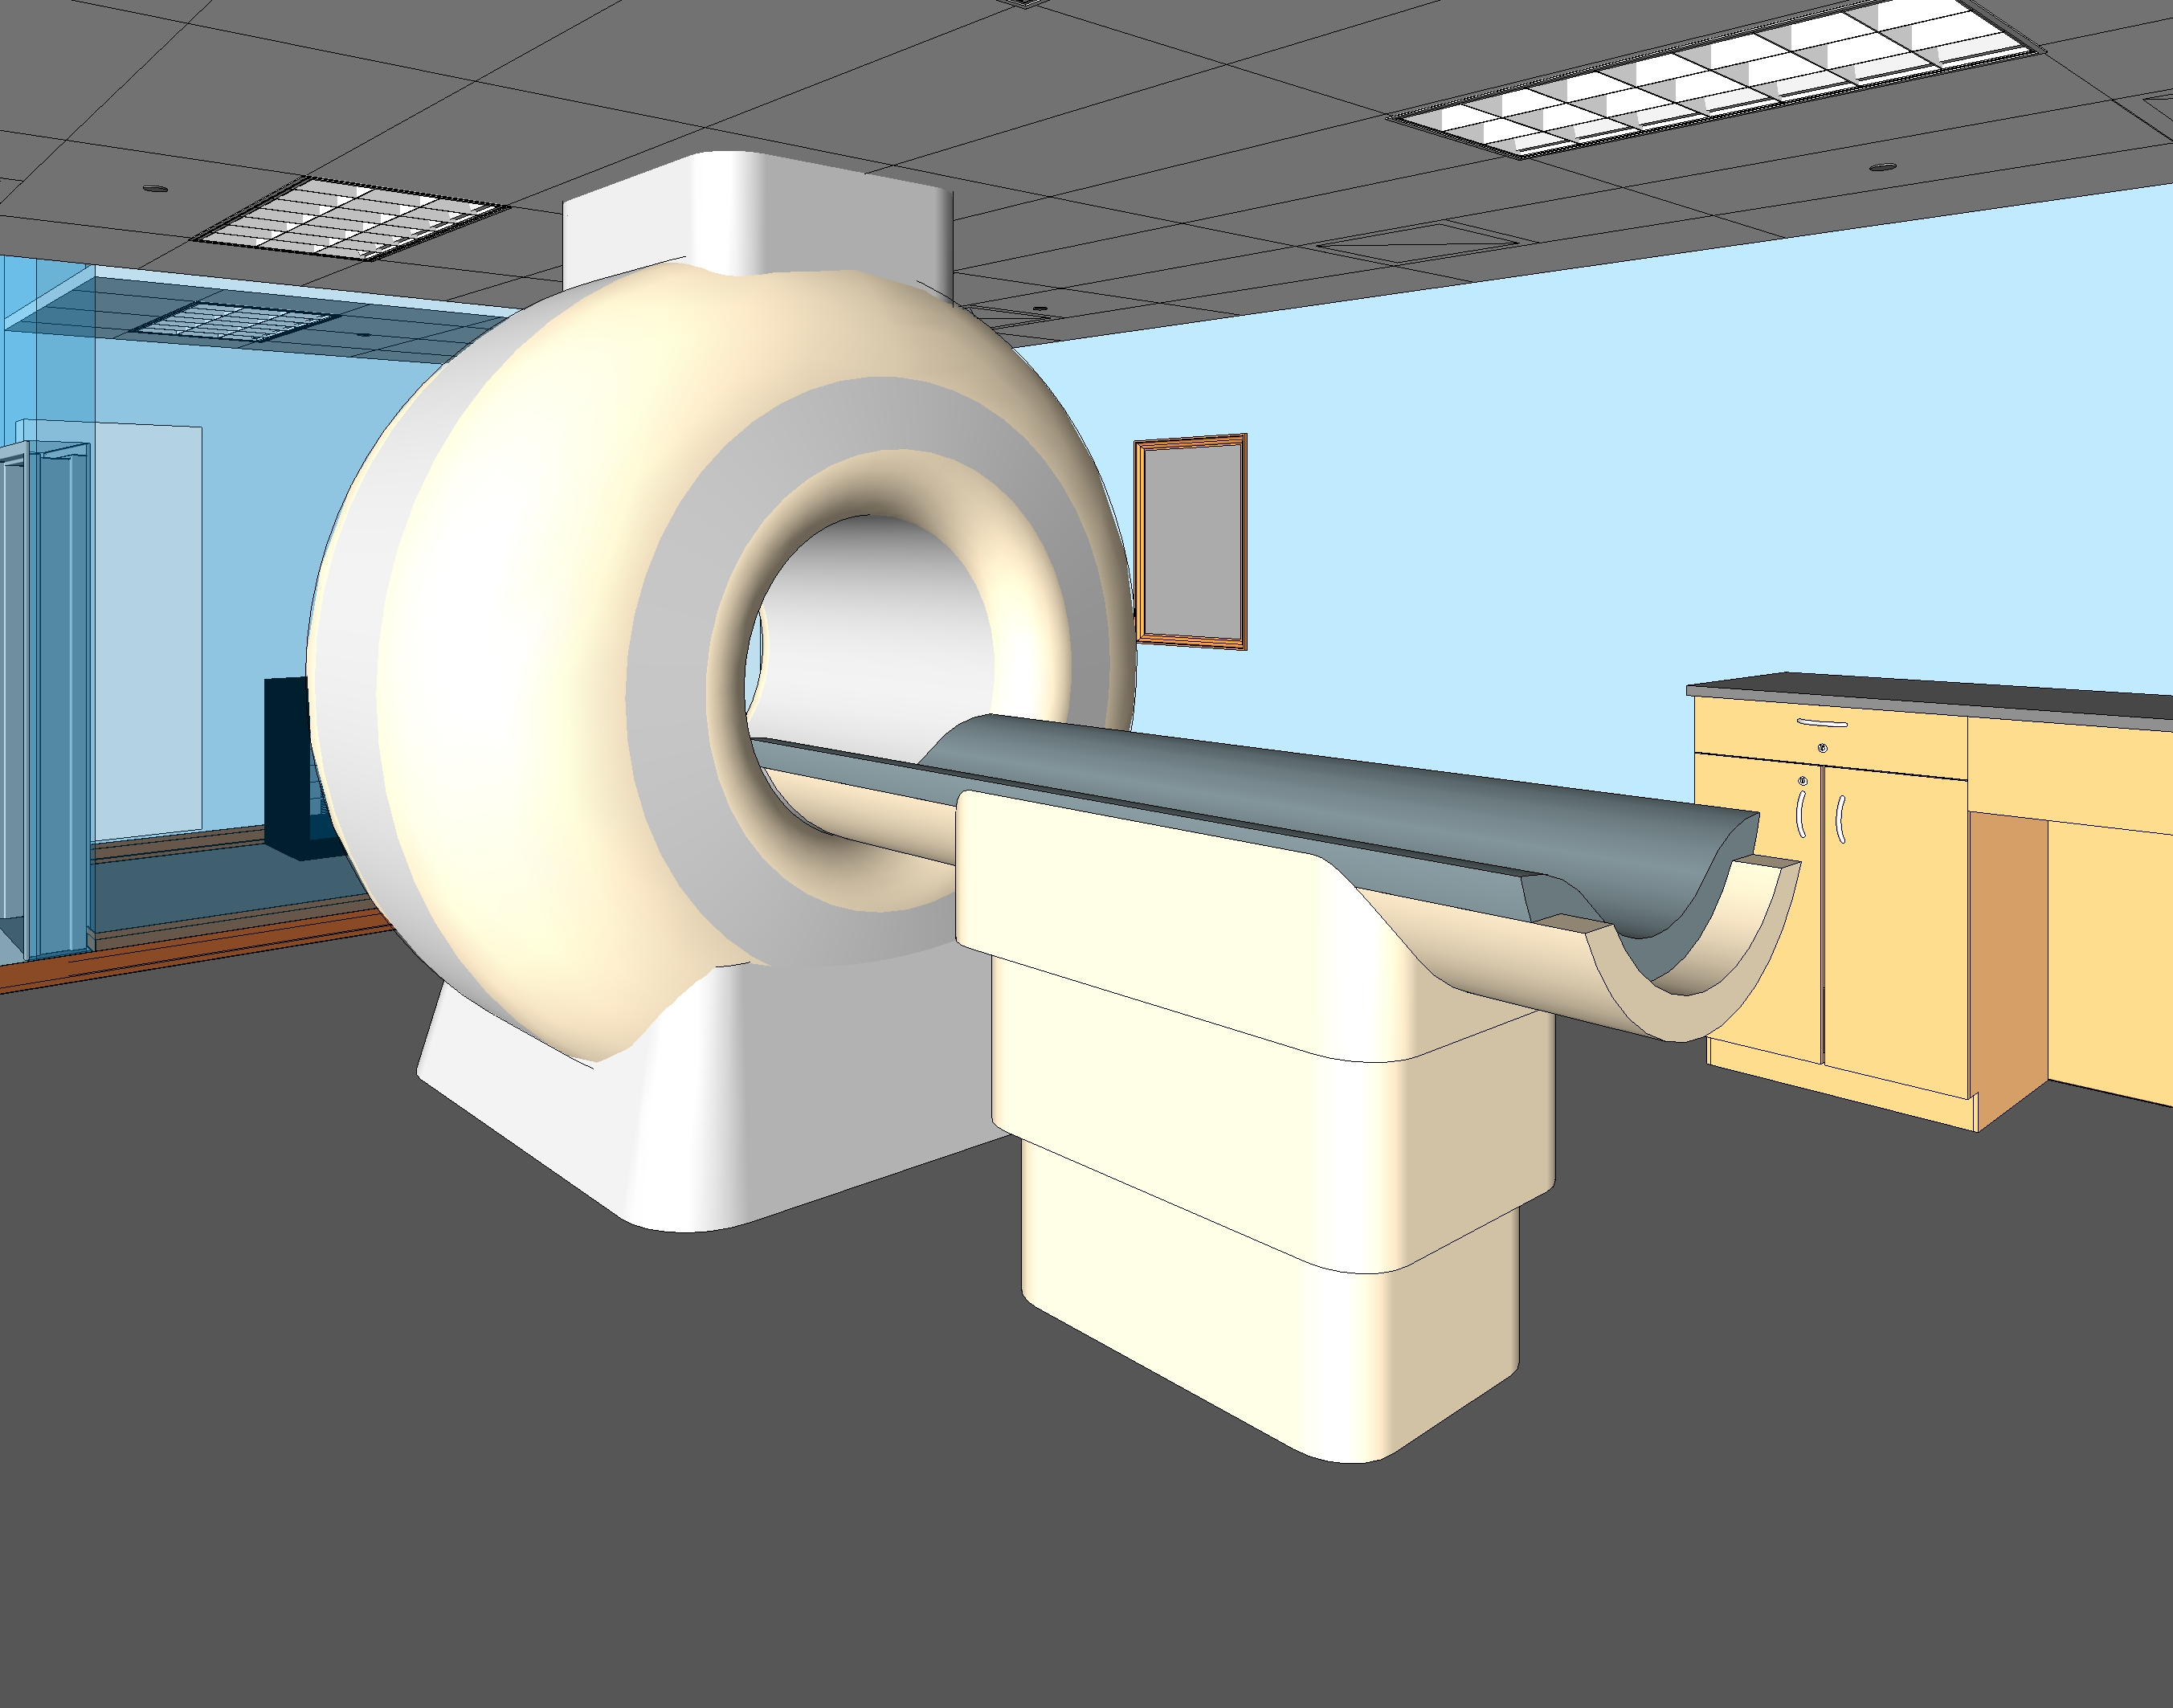 Medical_mri_room_reed_3d